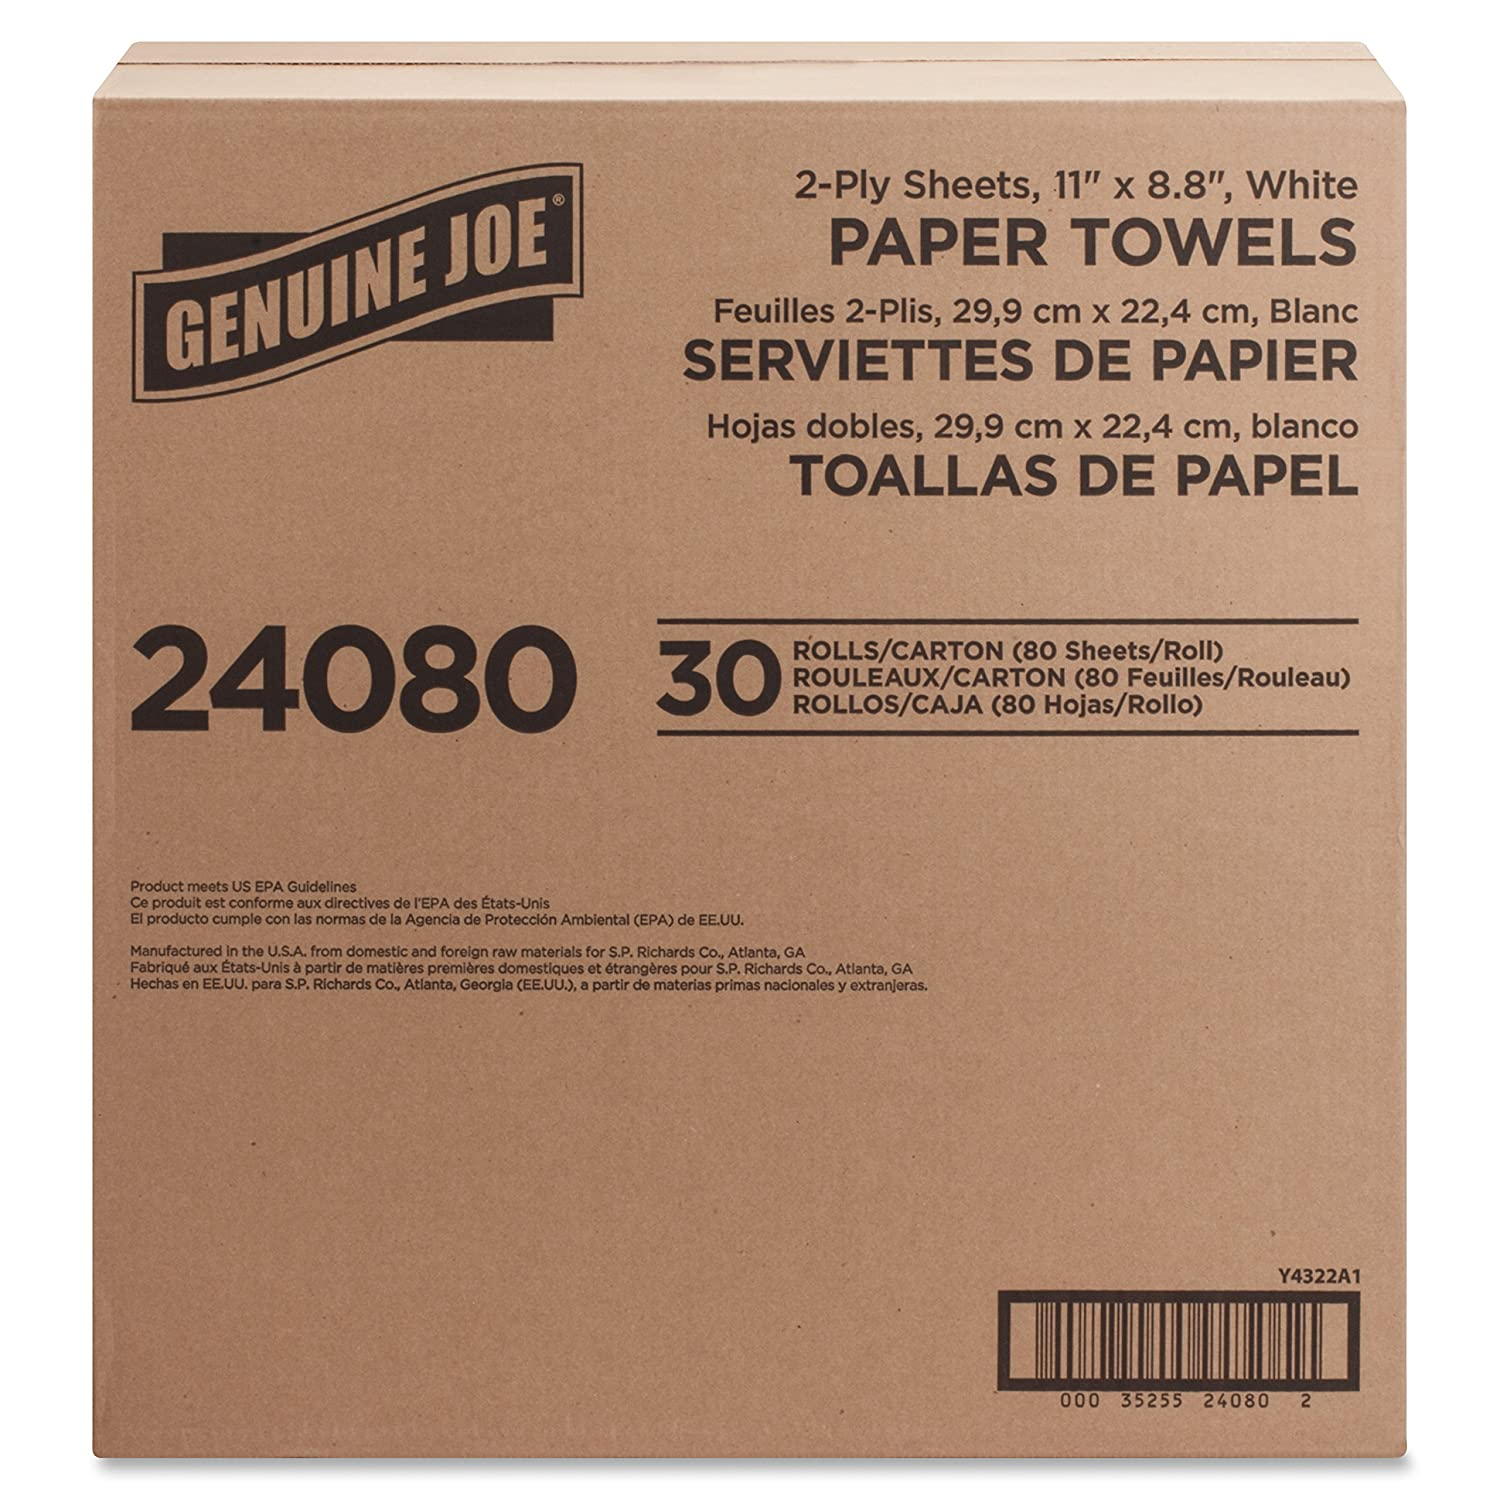 Amazon.com: Genuine Joe GJO24080 2-Ply Household Roll Paper Towels (Pack of 30): Industrial & Scientific